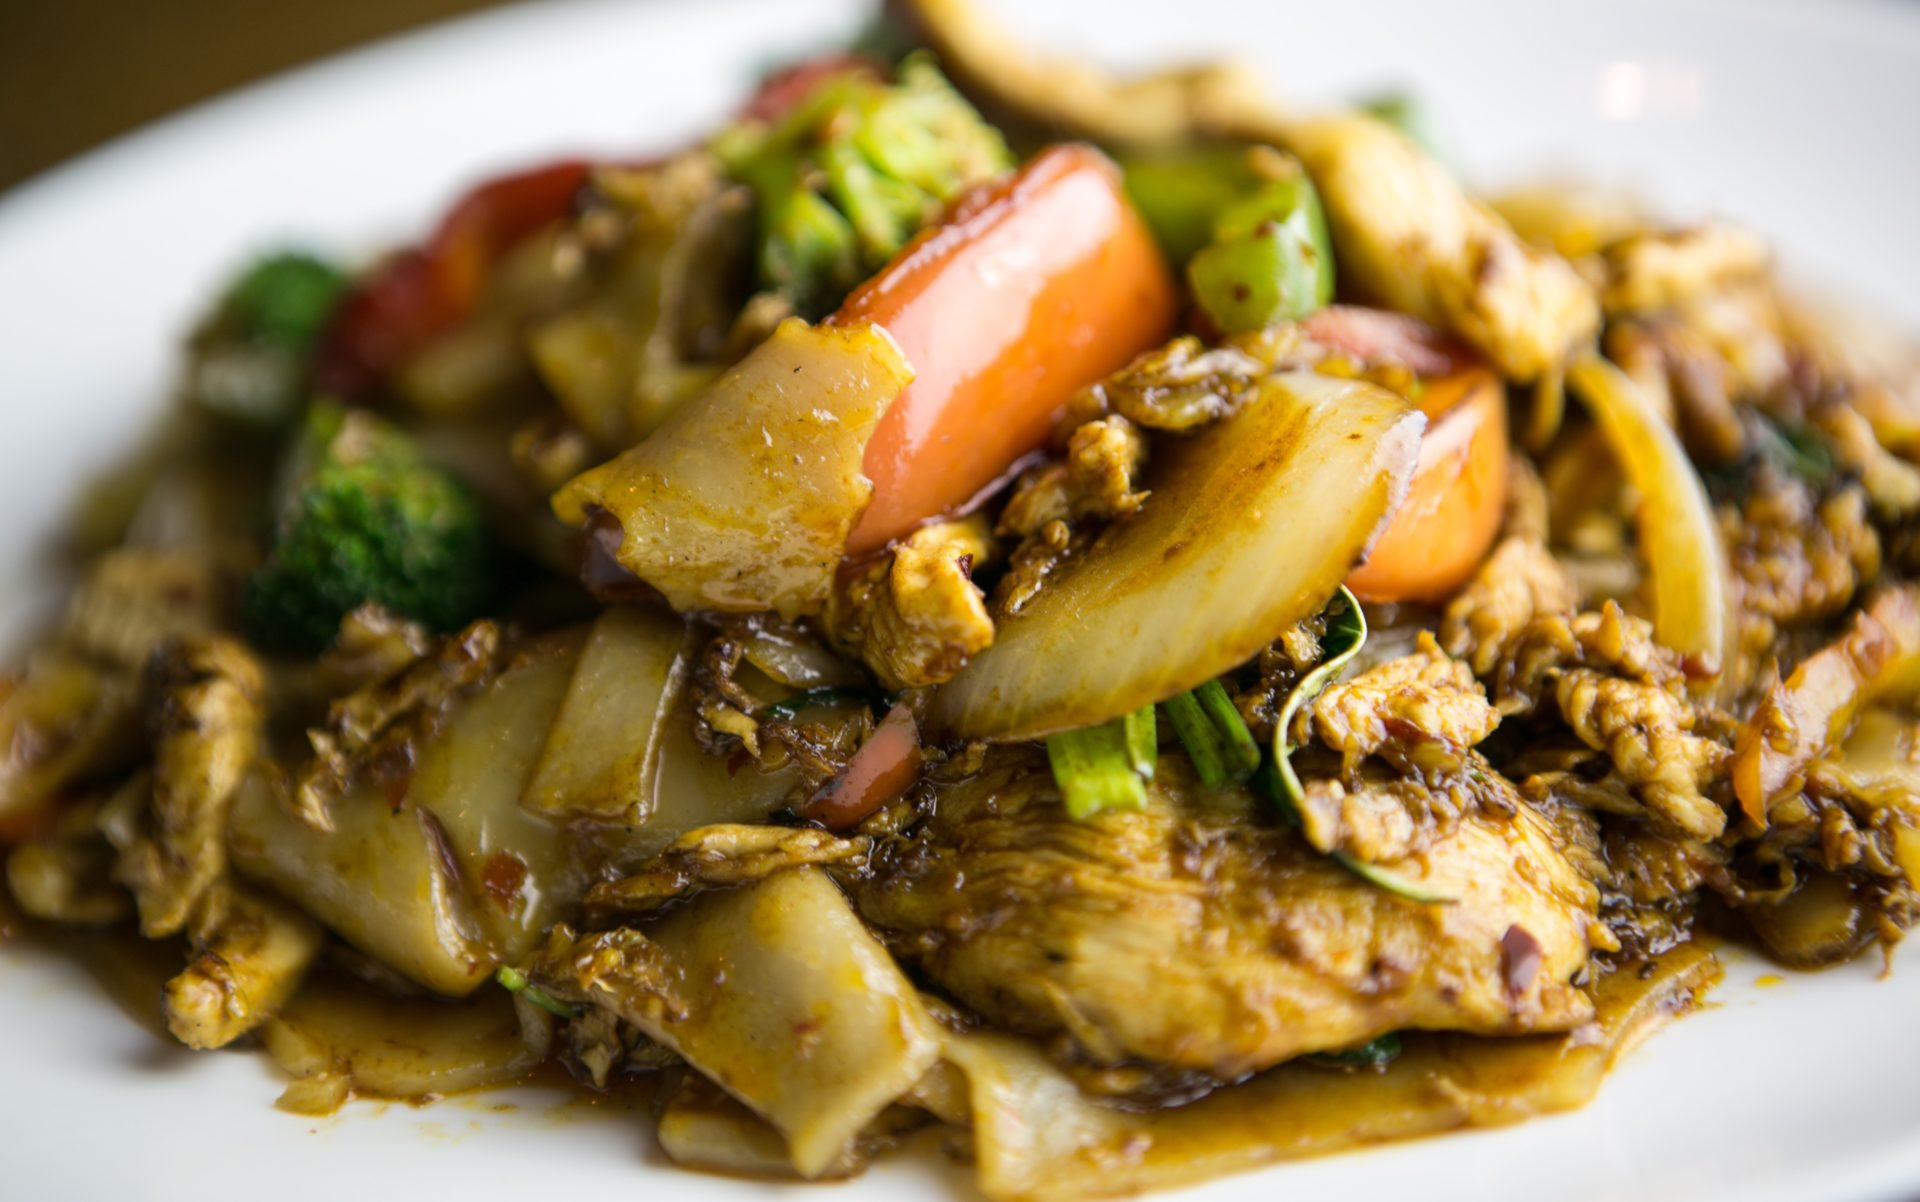 Oodles of Noodles: Top 5 Thai Noodle Dishes in Seattle